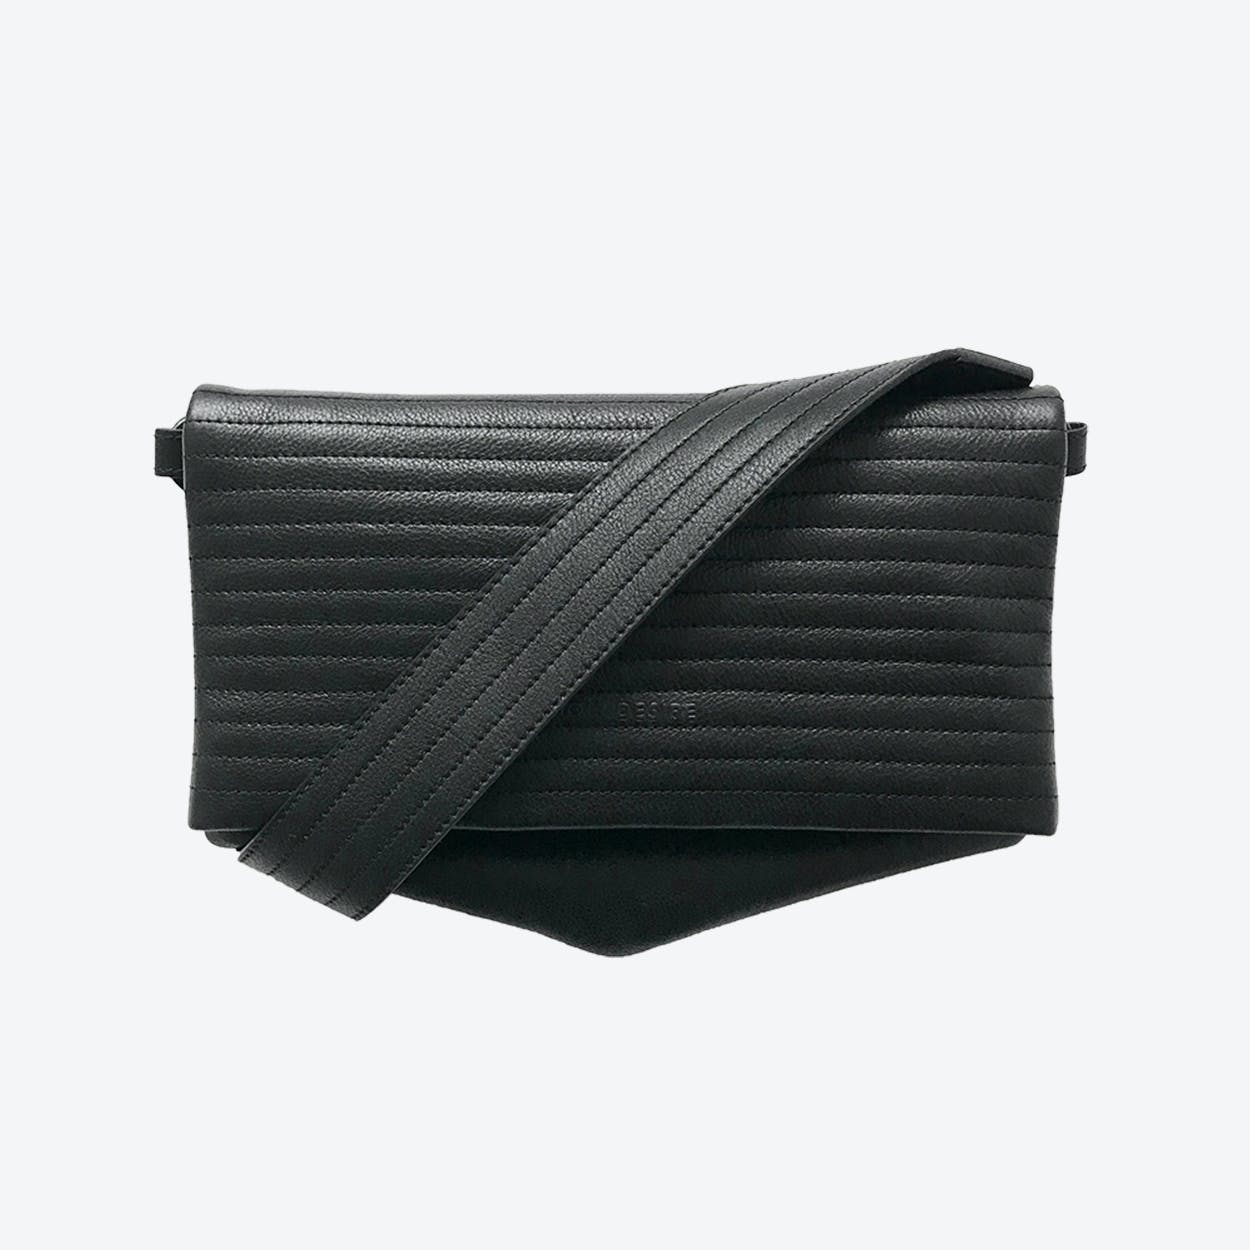 ND Folded Big Pinstripe #6 - 3-in-1 Leather Bag